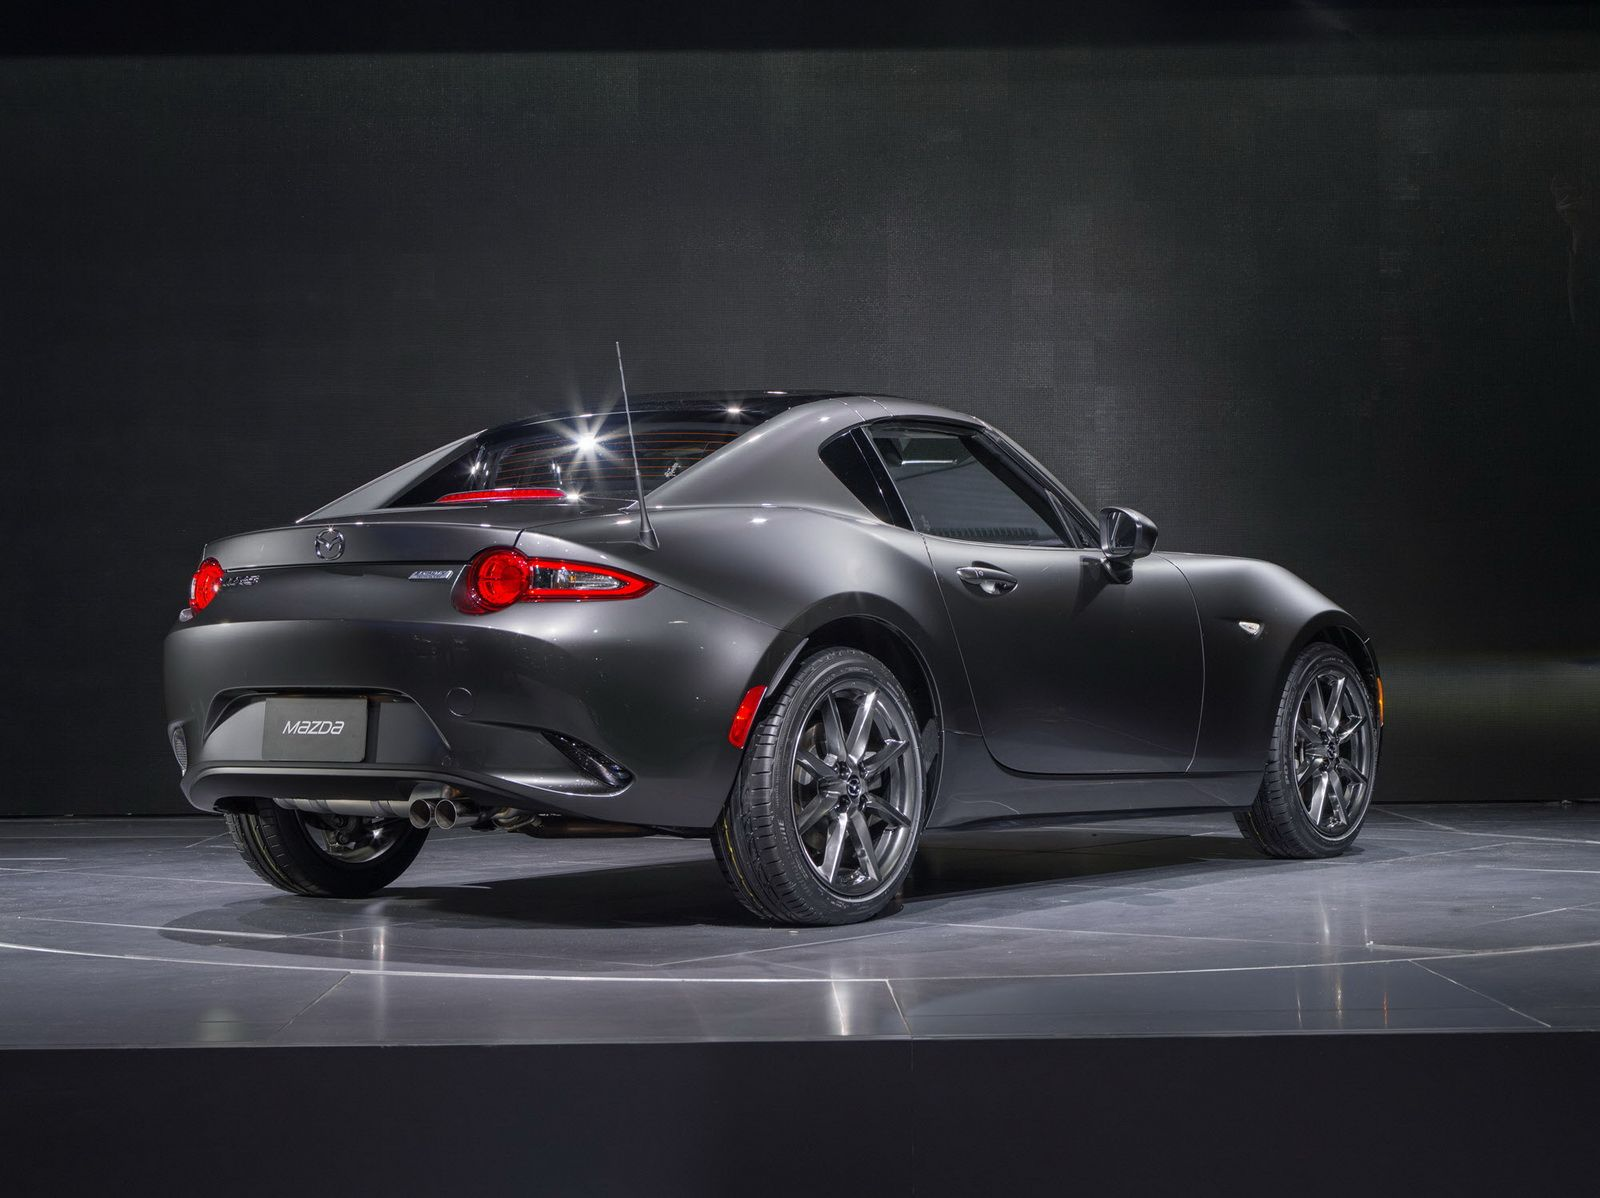 Mazda Recently Revealed The Hardtop Convertible Miata U2013 RF. Here Are 7  Things You May Not Have Known About Mazdau0027s Latest Sports Car.